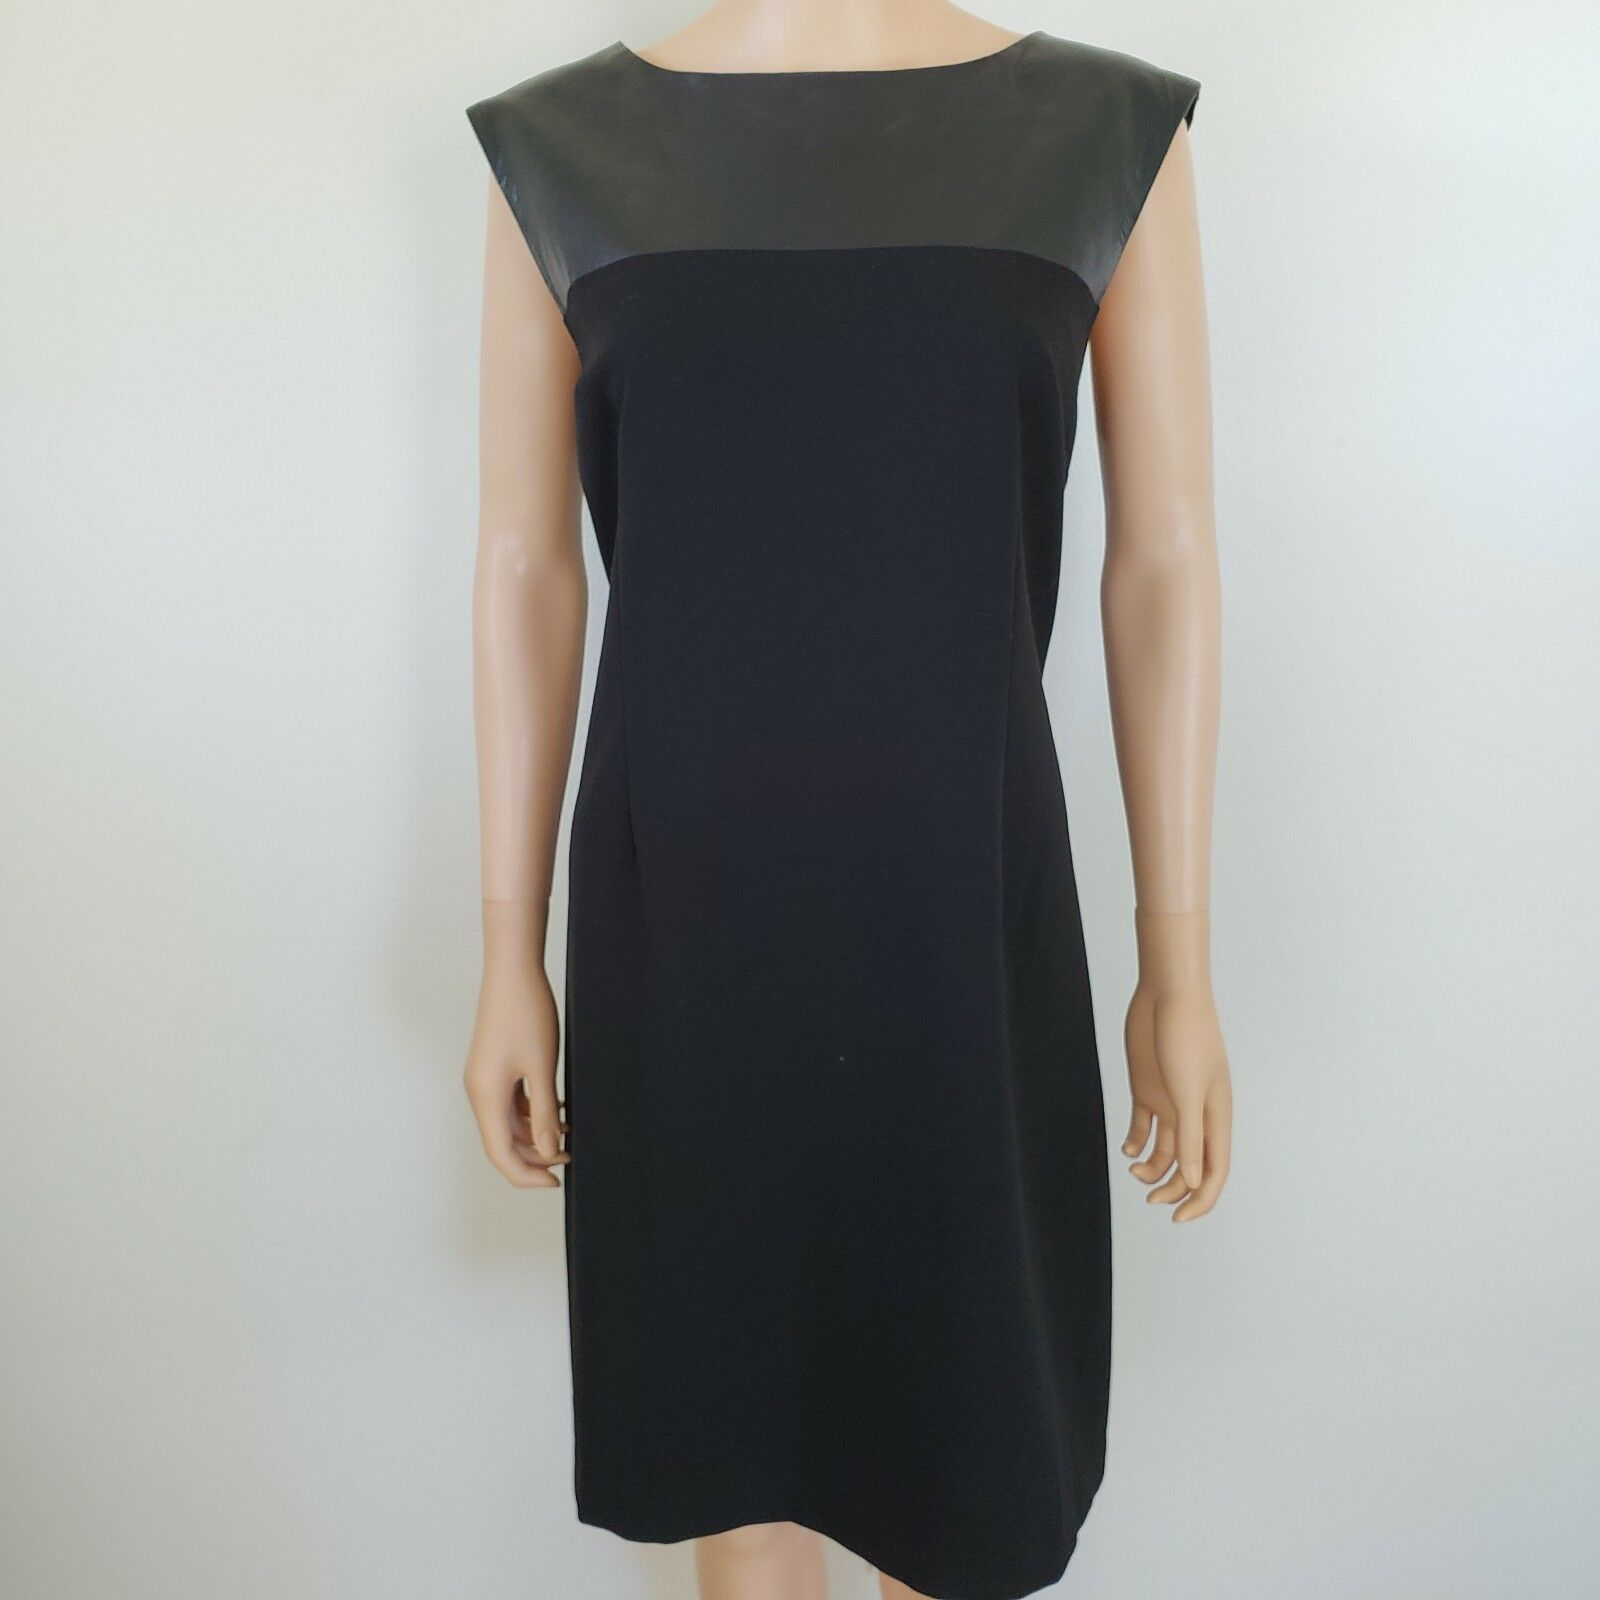 Laundry by Design Sheath Dress Faux Leather Size 14